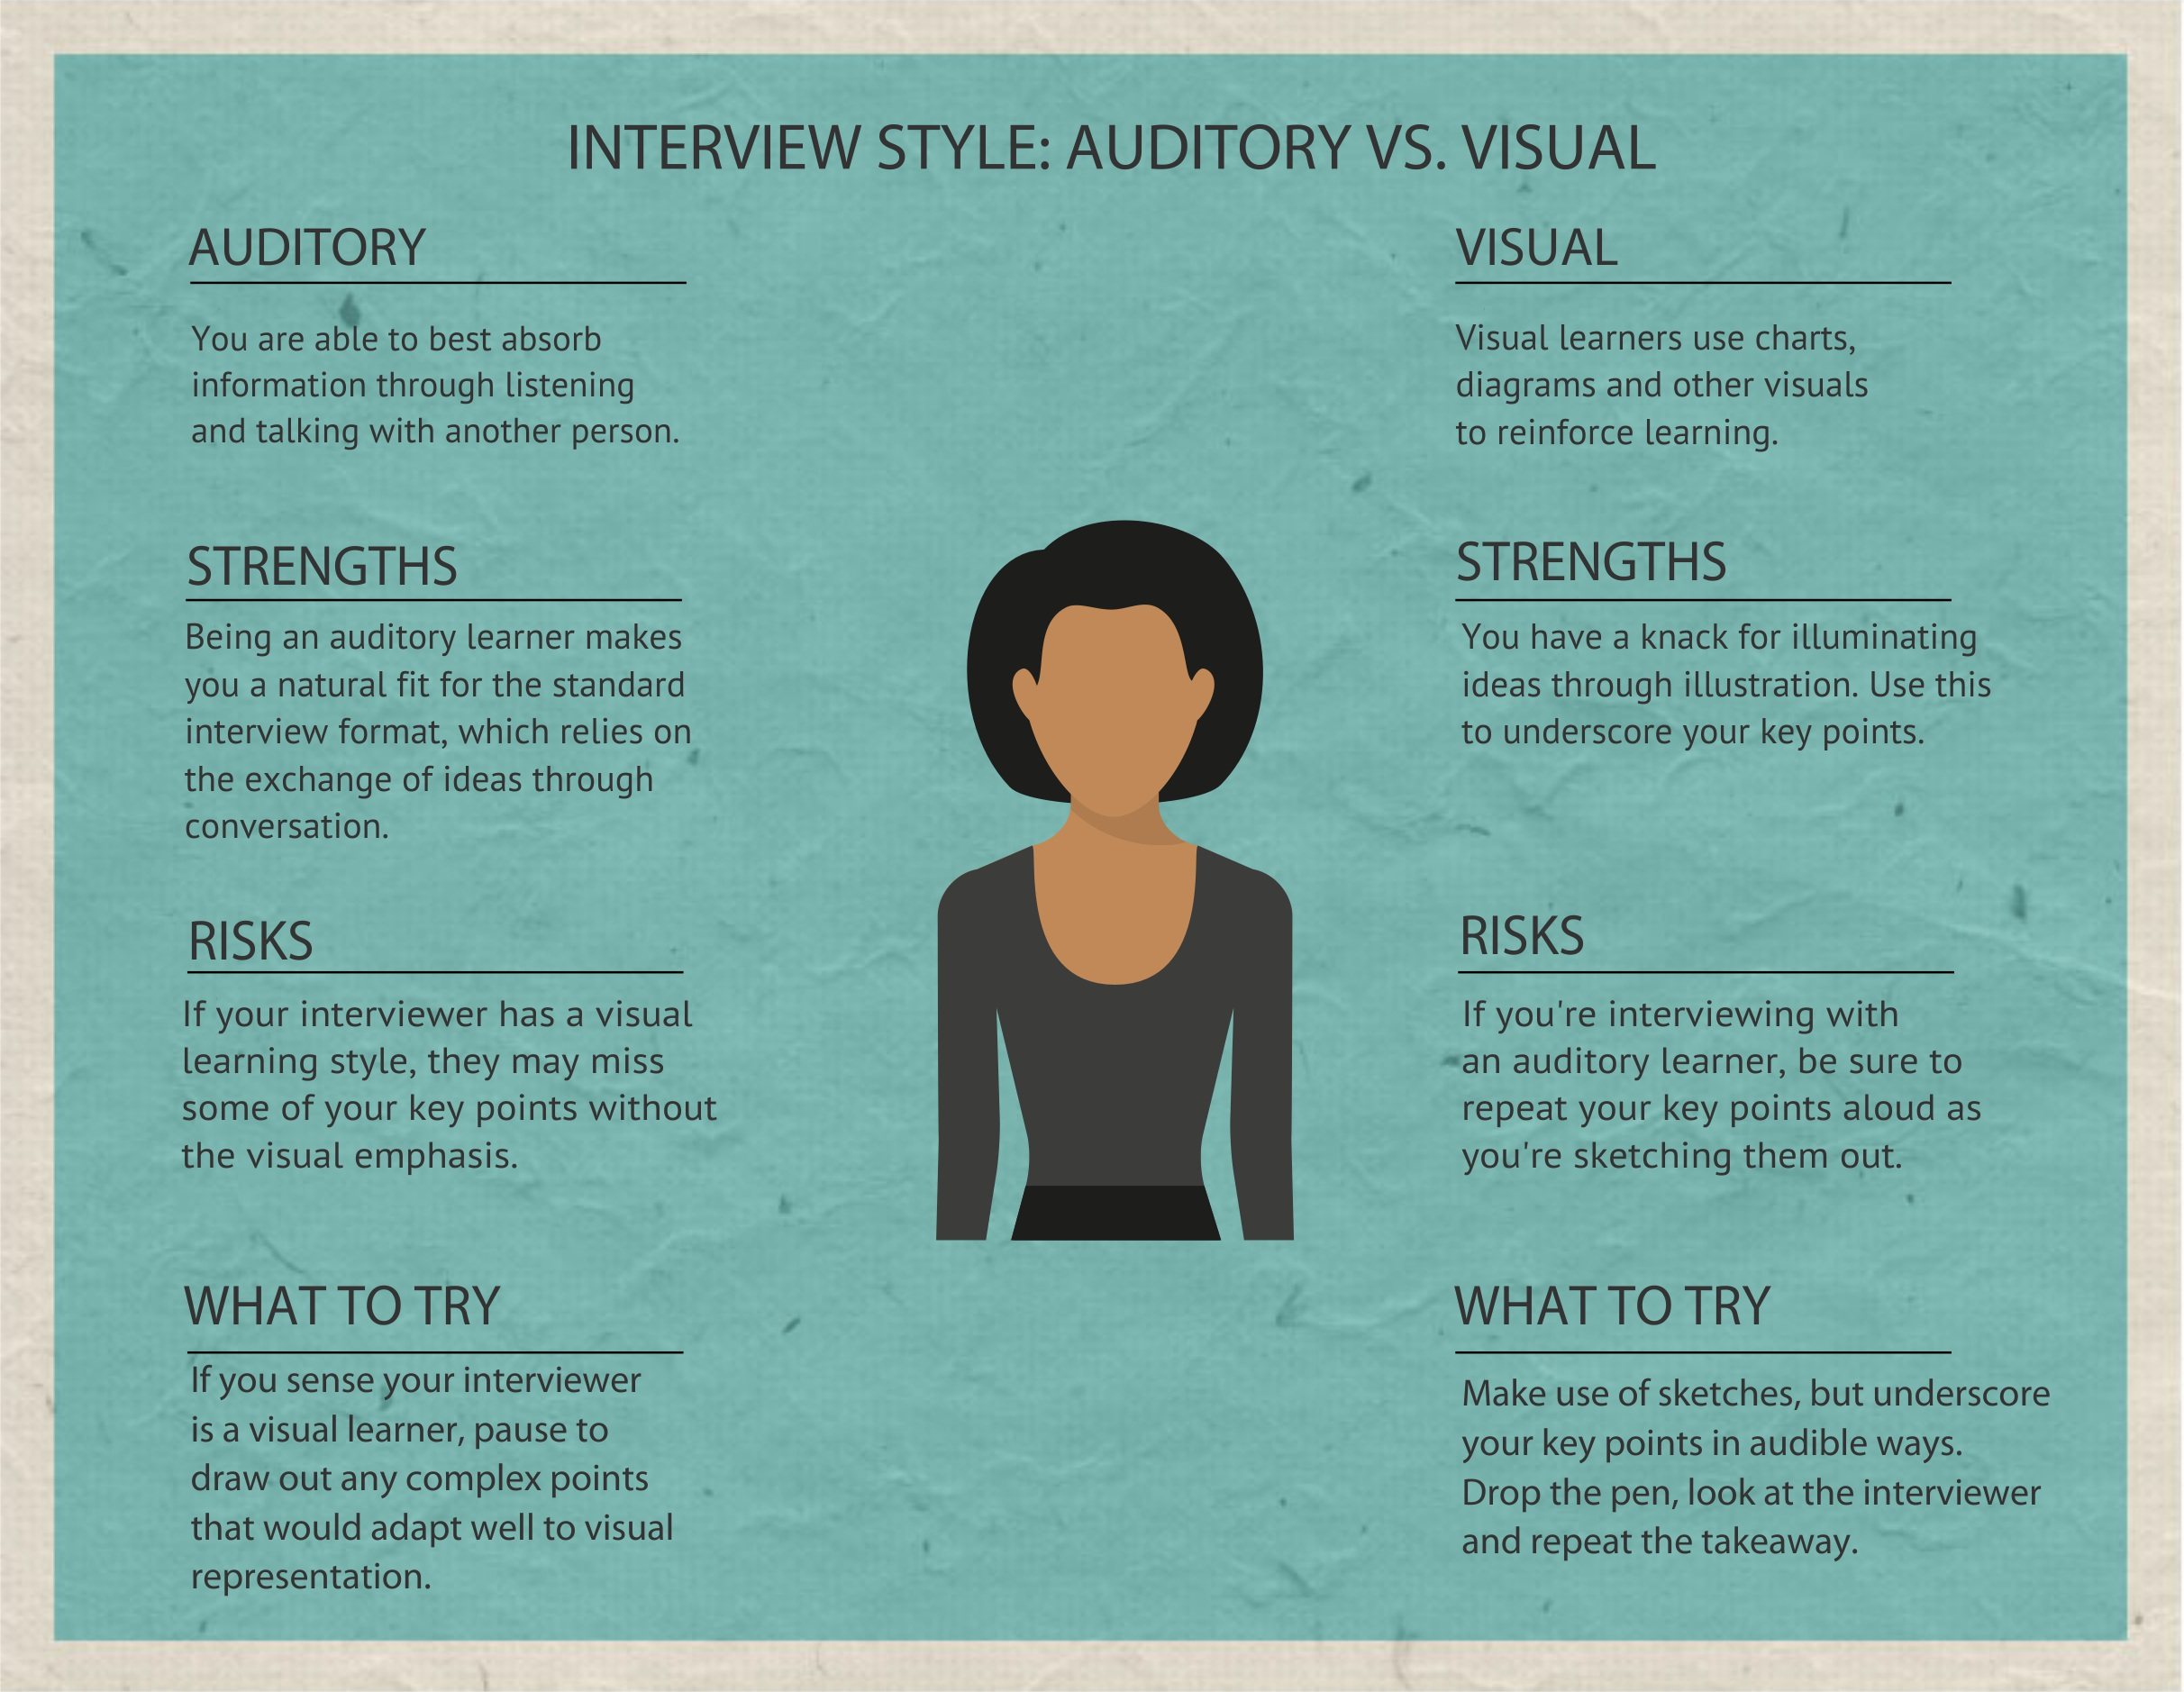 INTERVIEWSTYLEAUDITORY